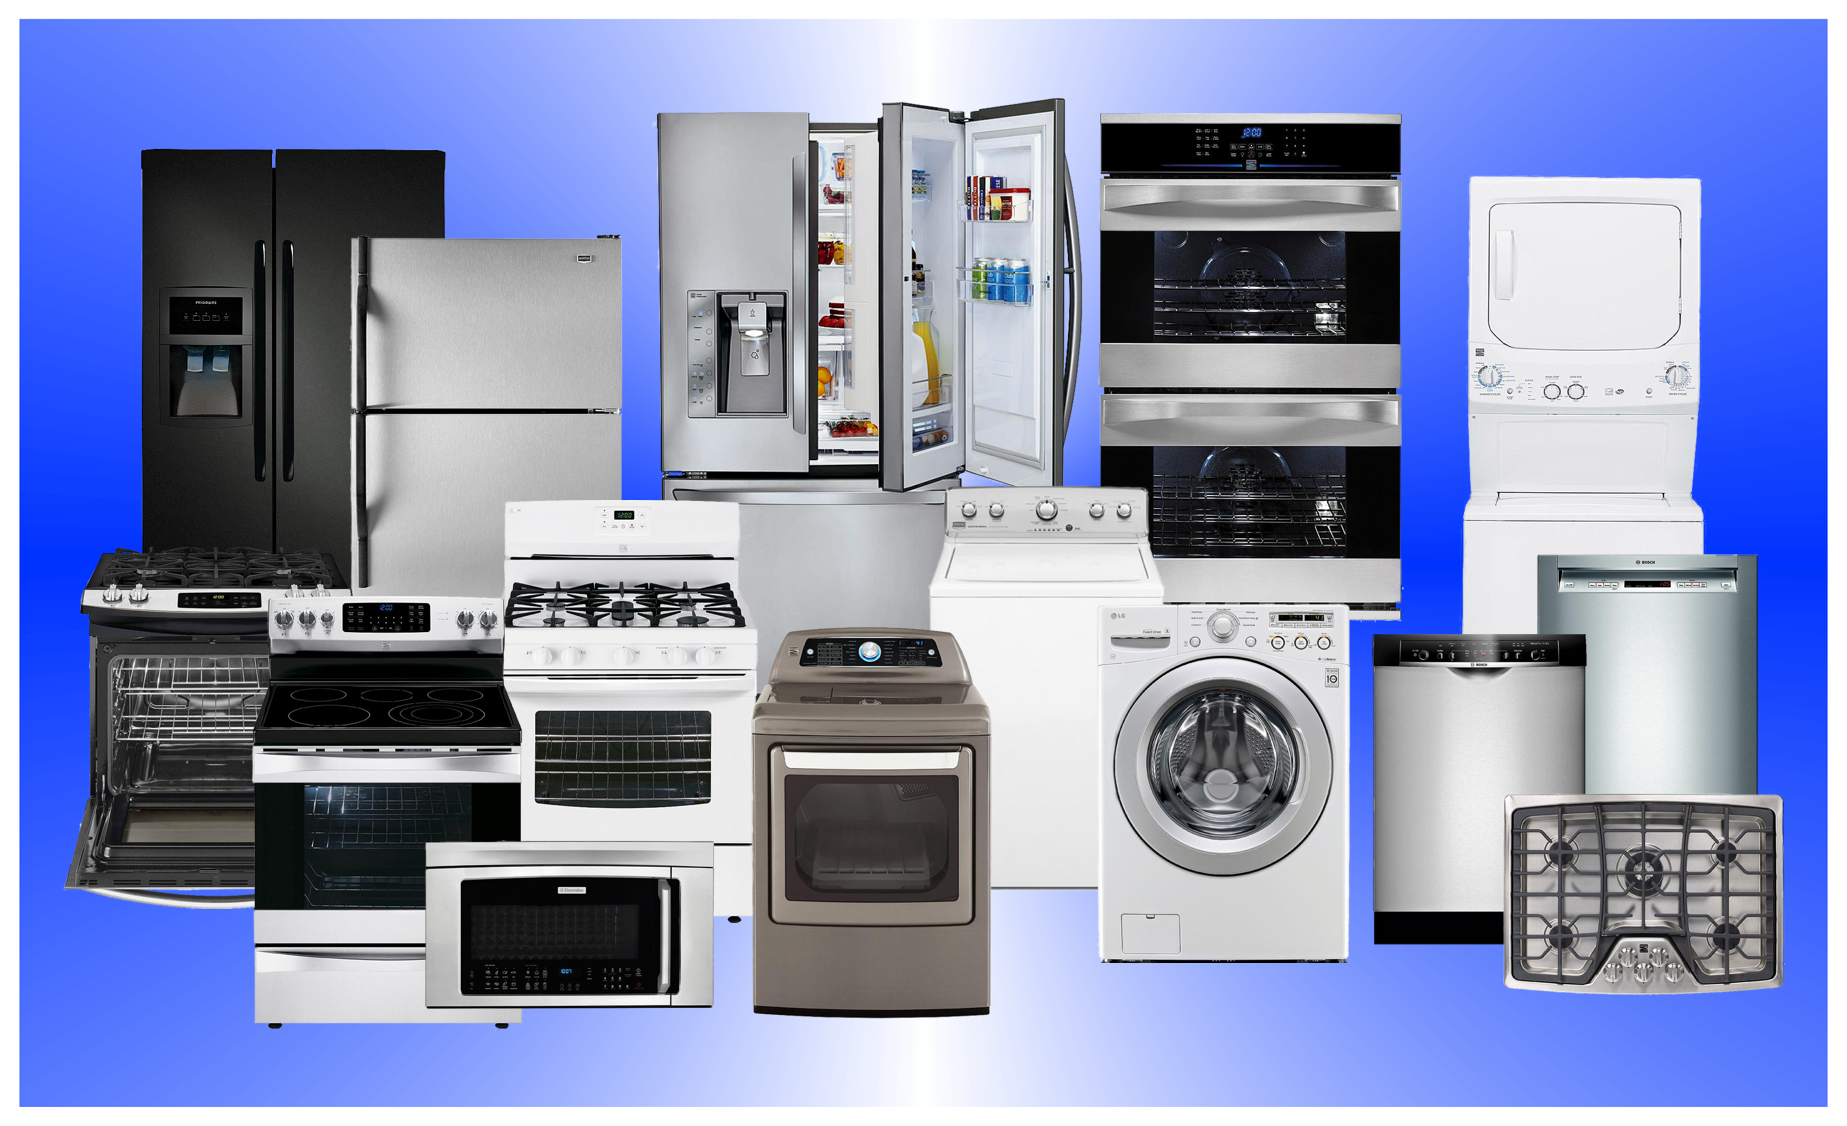 Appliance Repair Sf Atech 415 728 7664 Get 20 Off